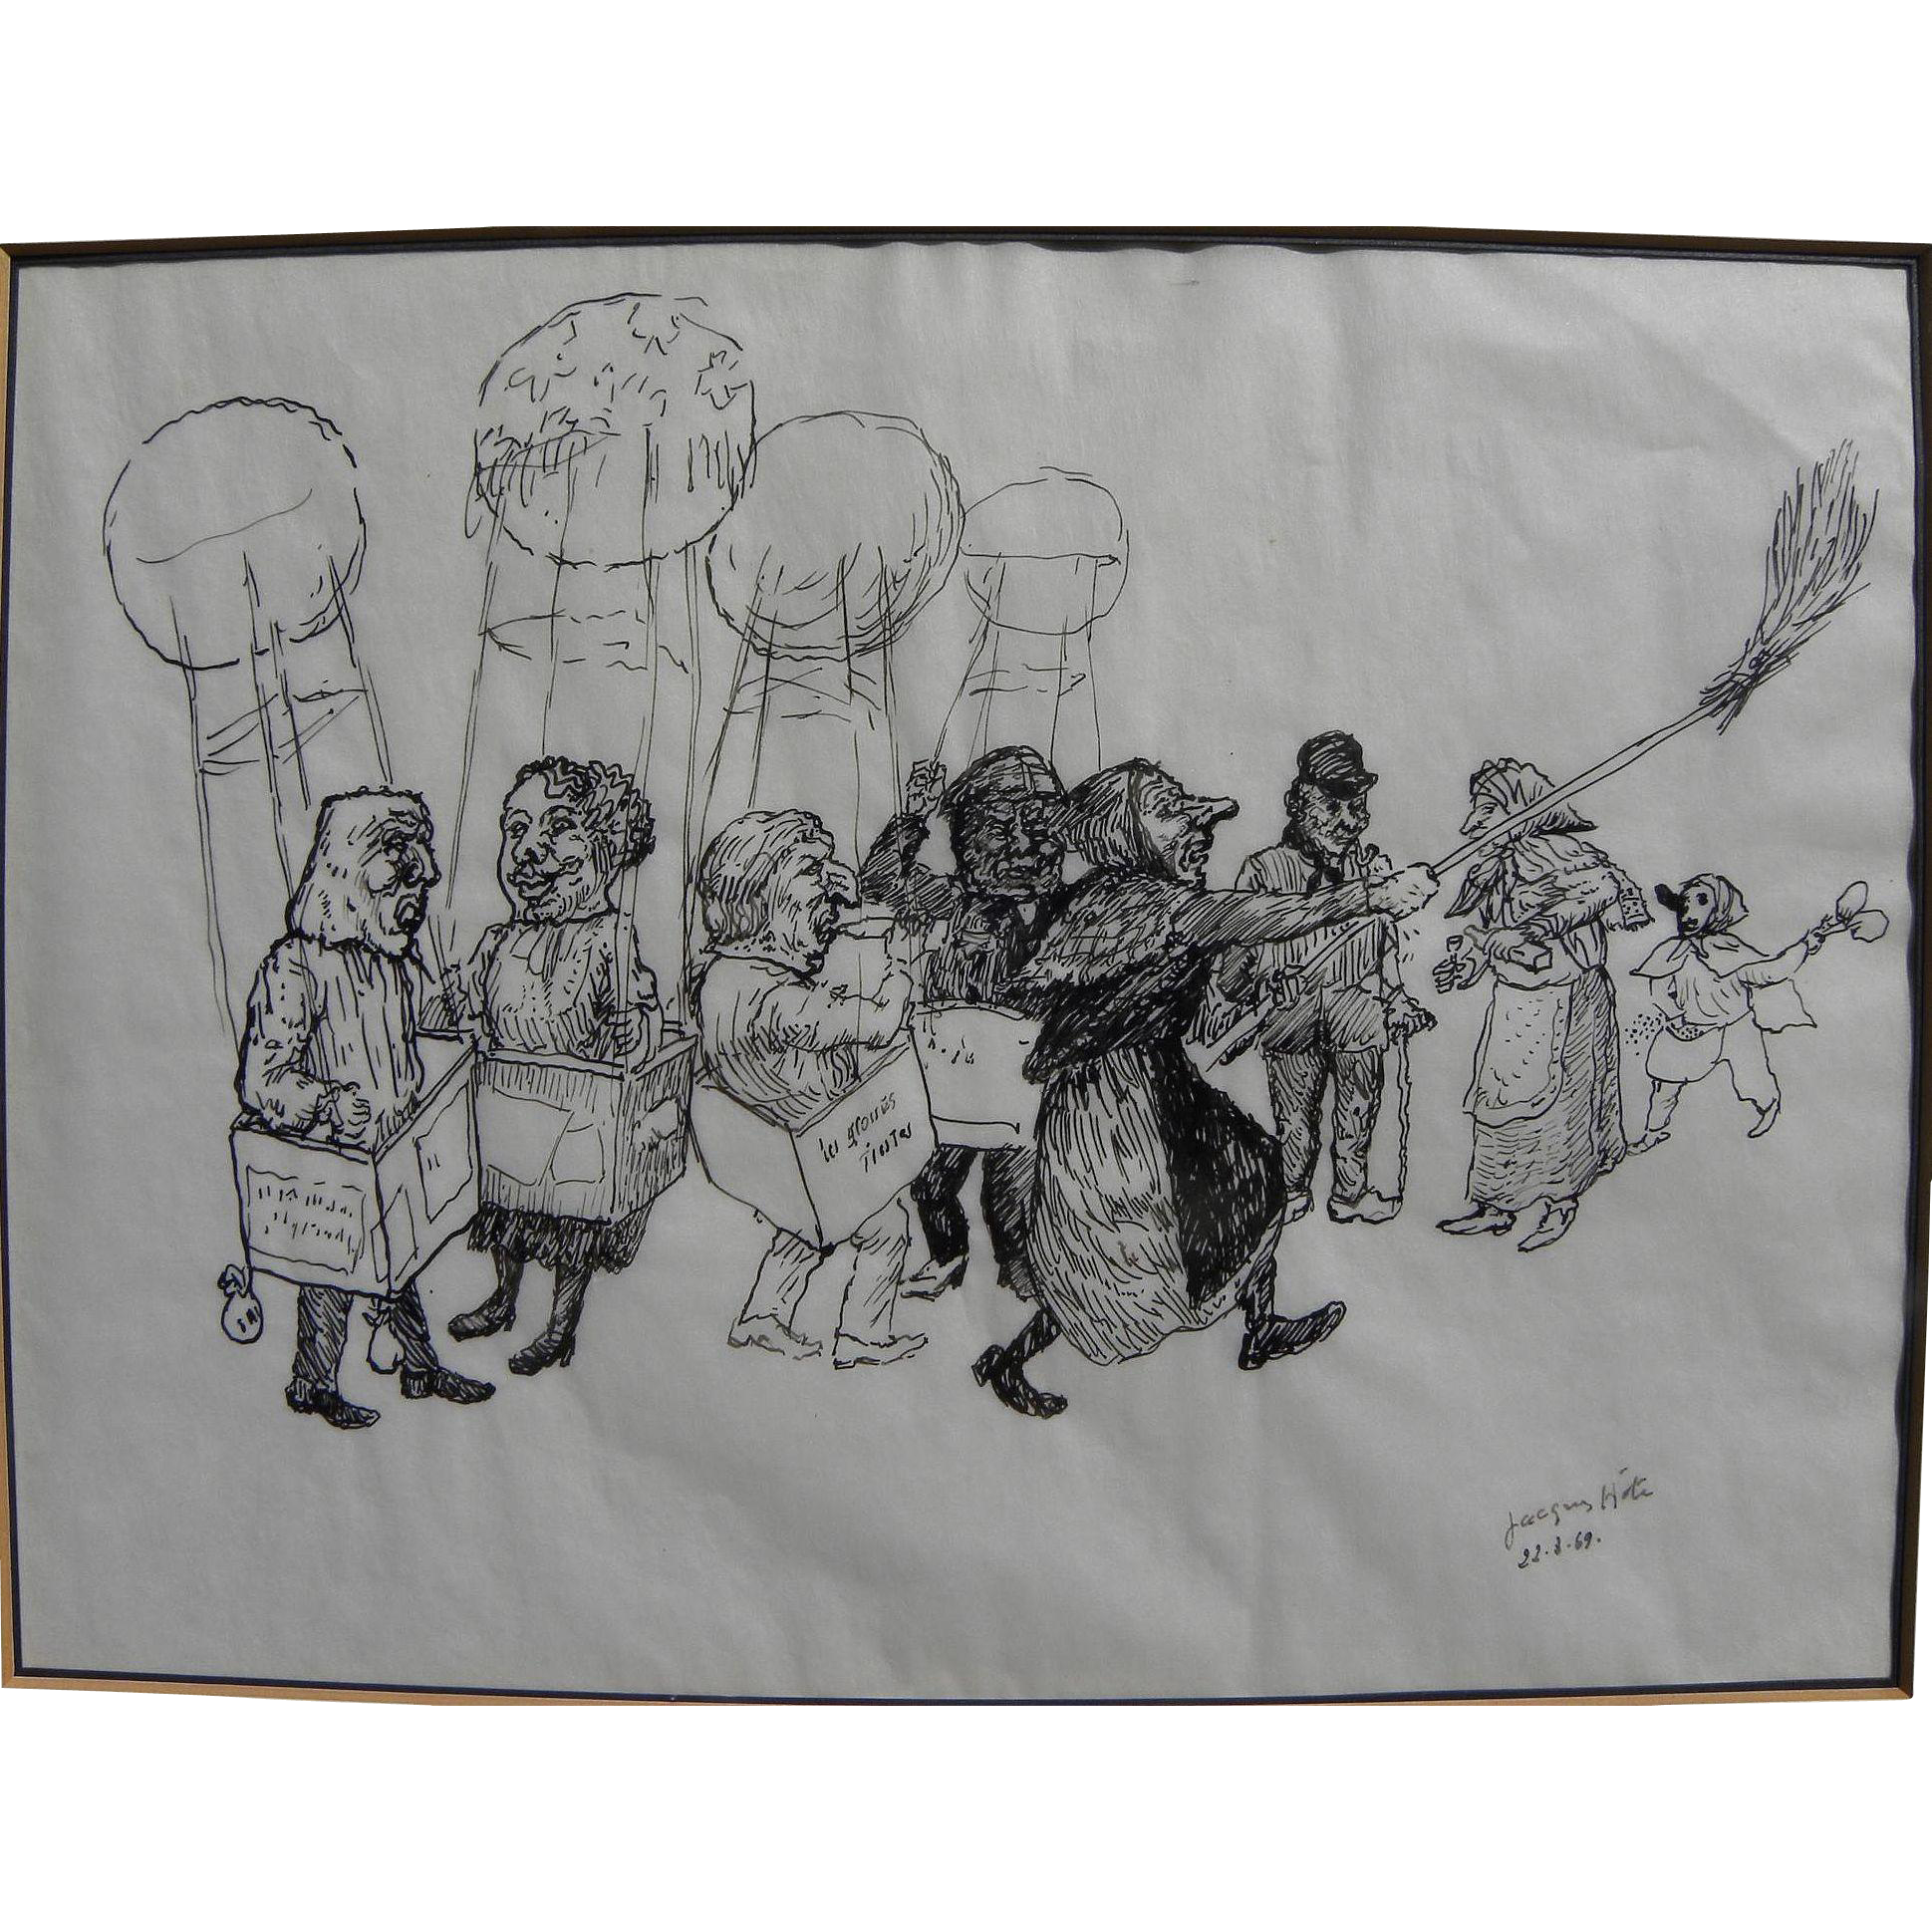 JACQUES HOTE (1939-1986) Belgian artist fine ink drawing of figures